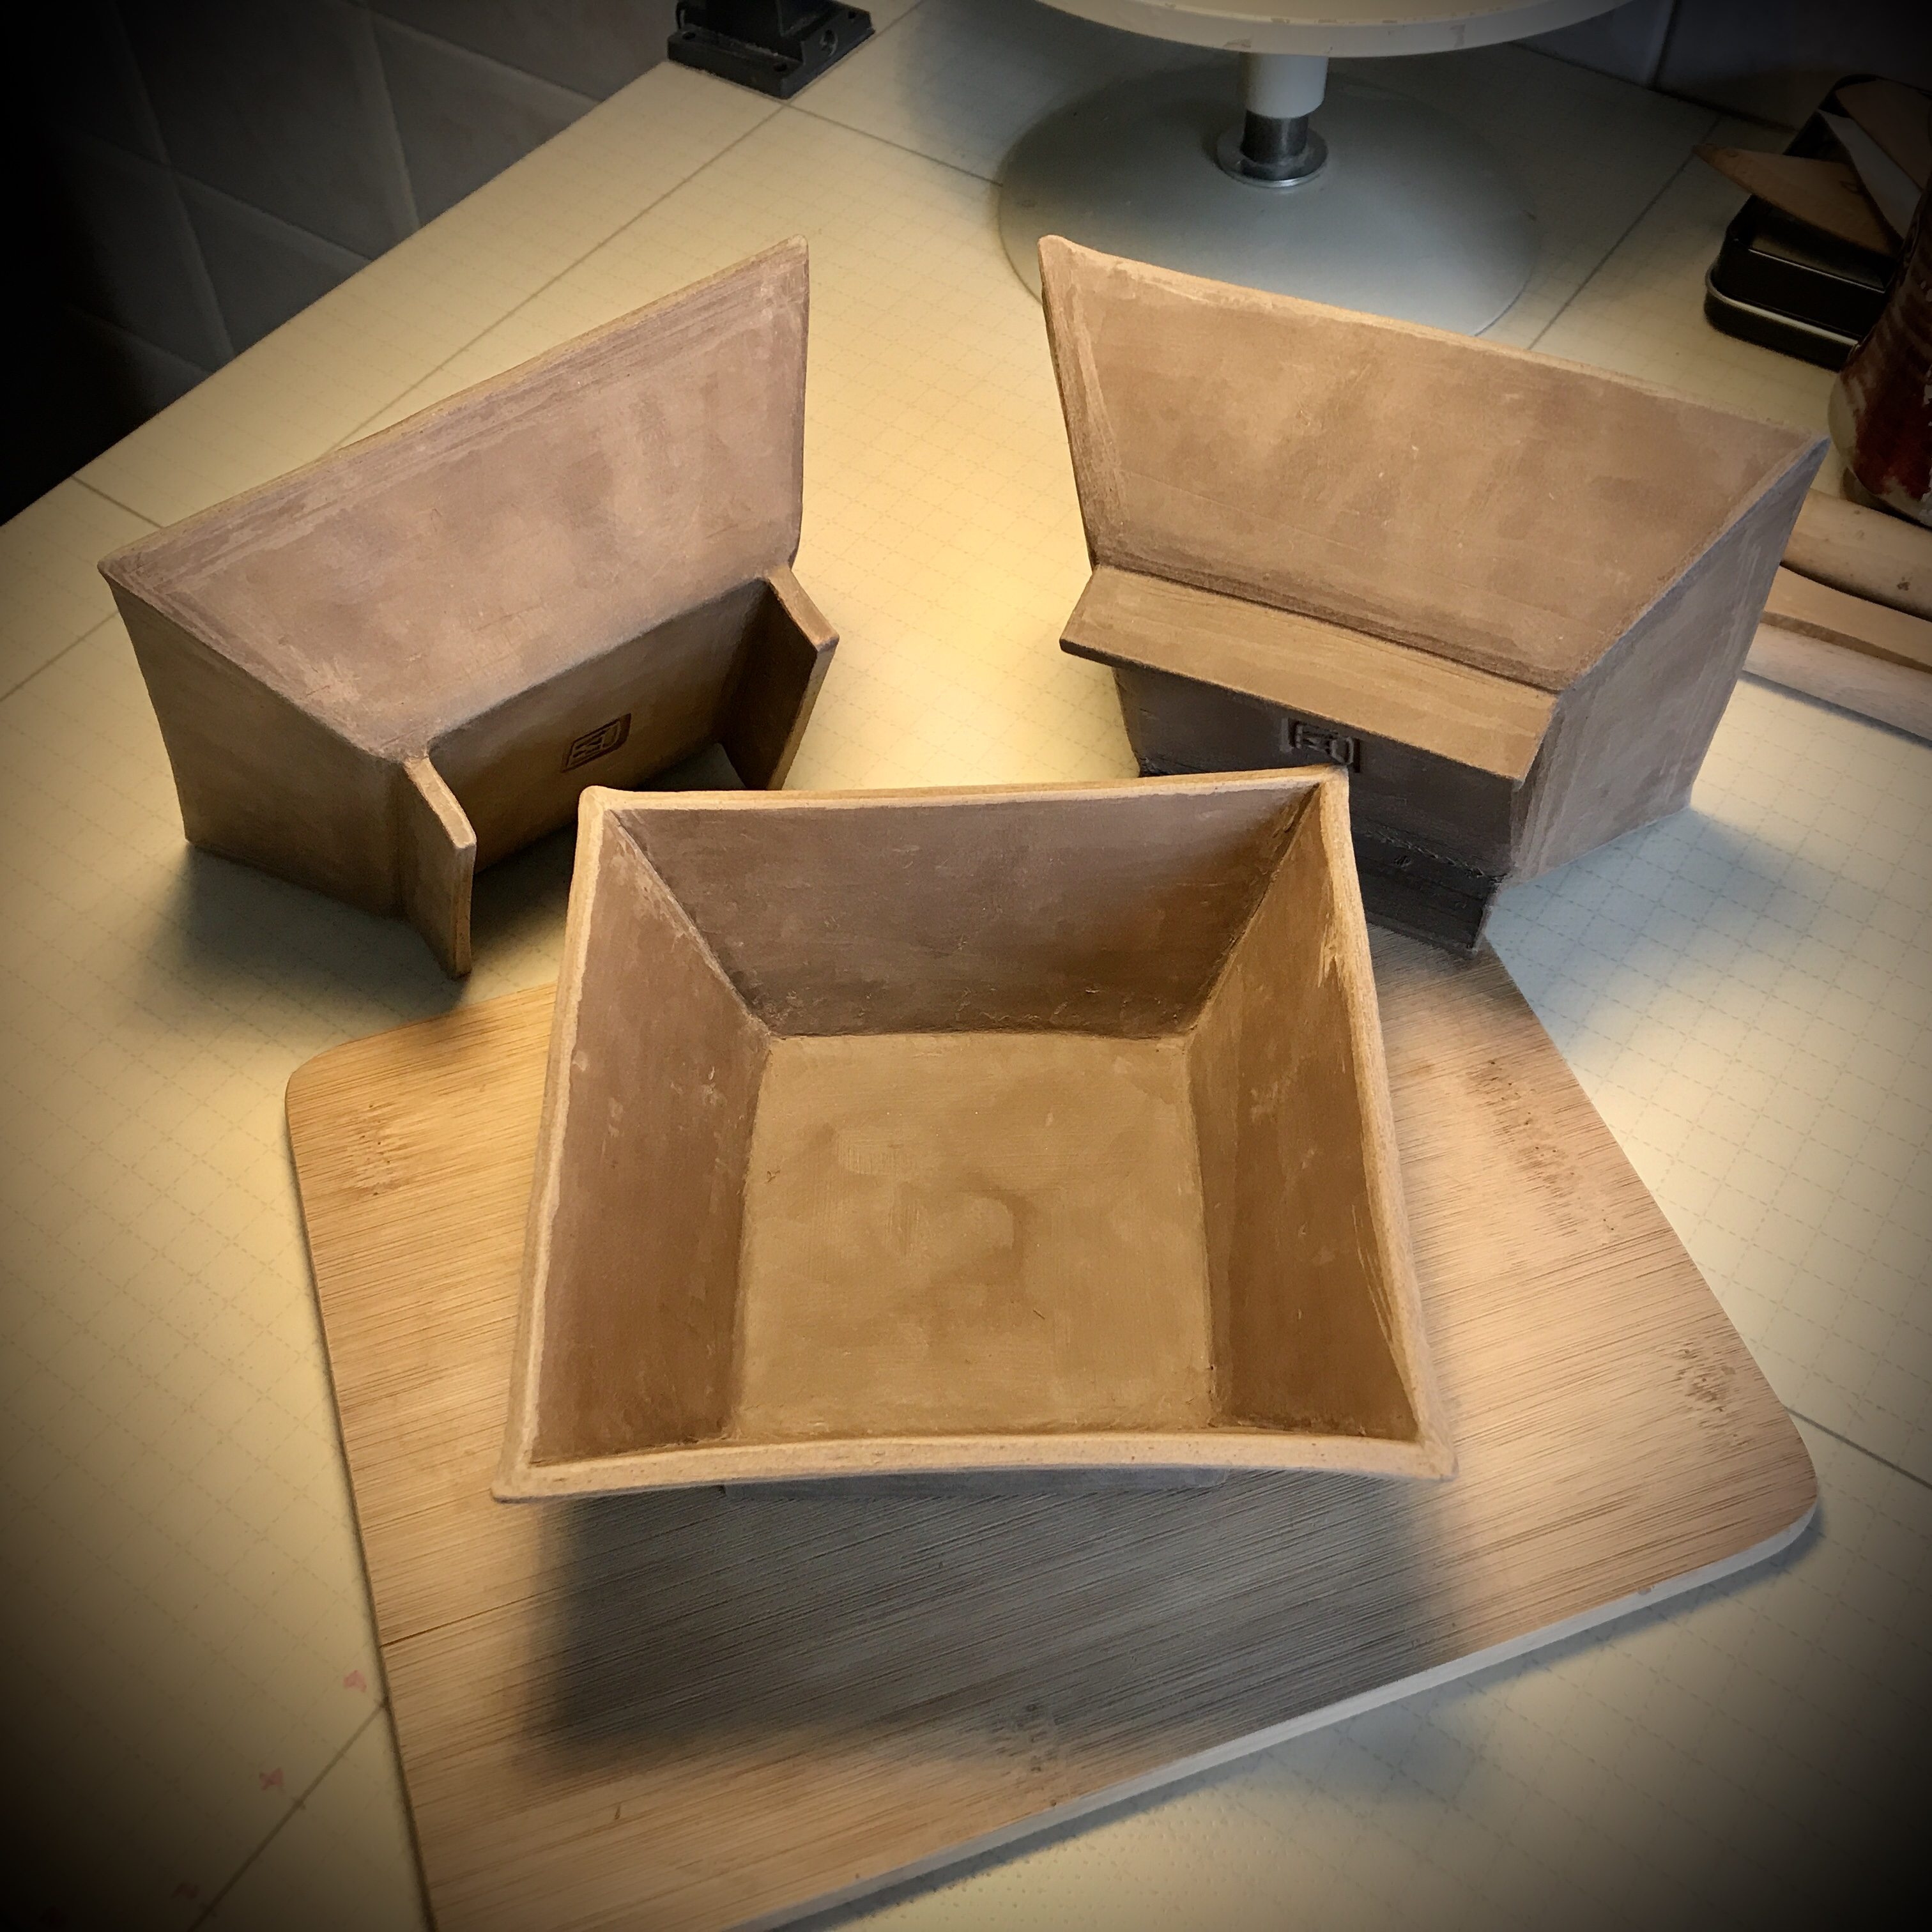 Plain square dishes...